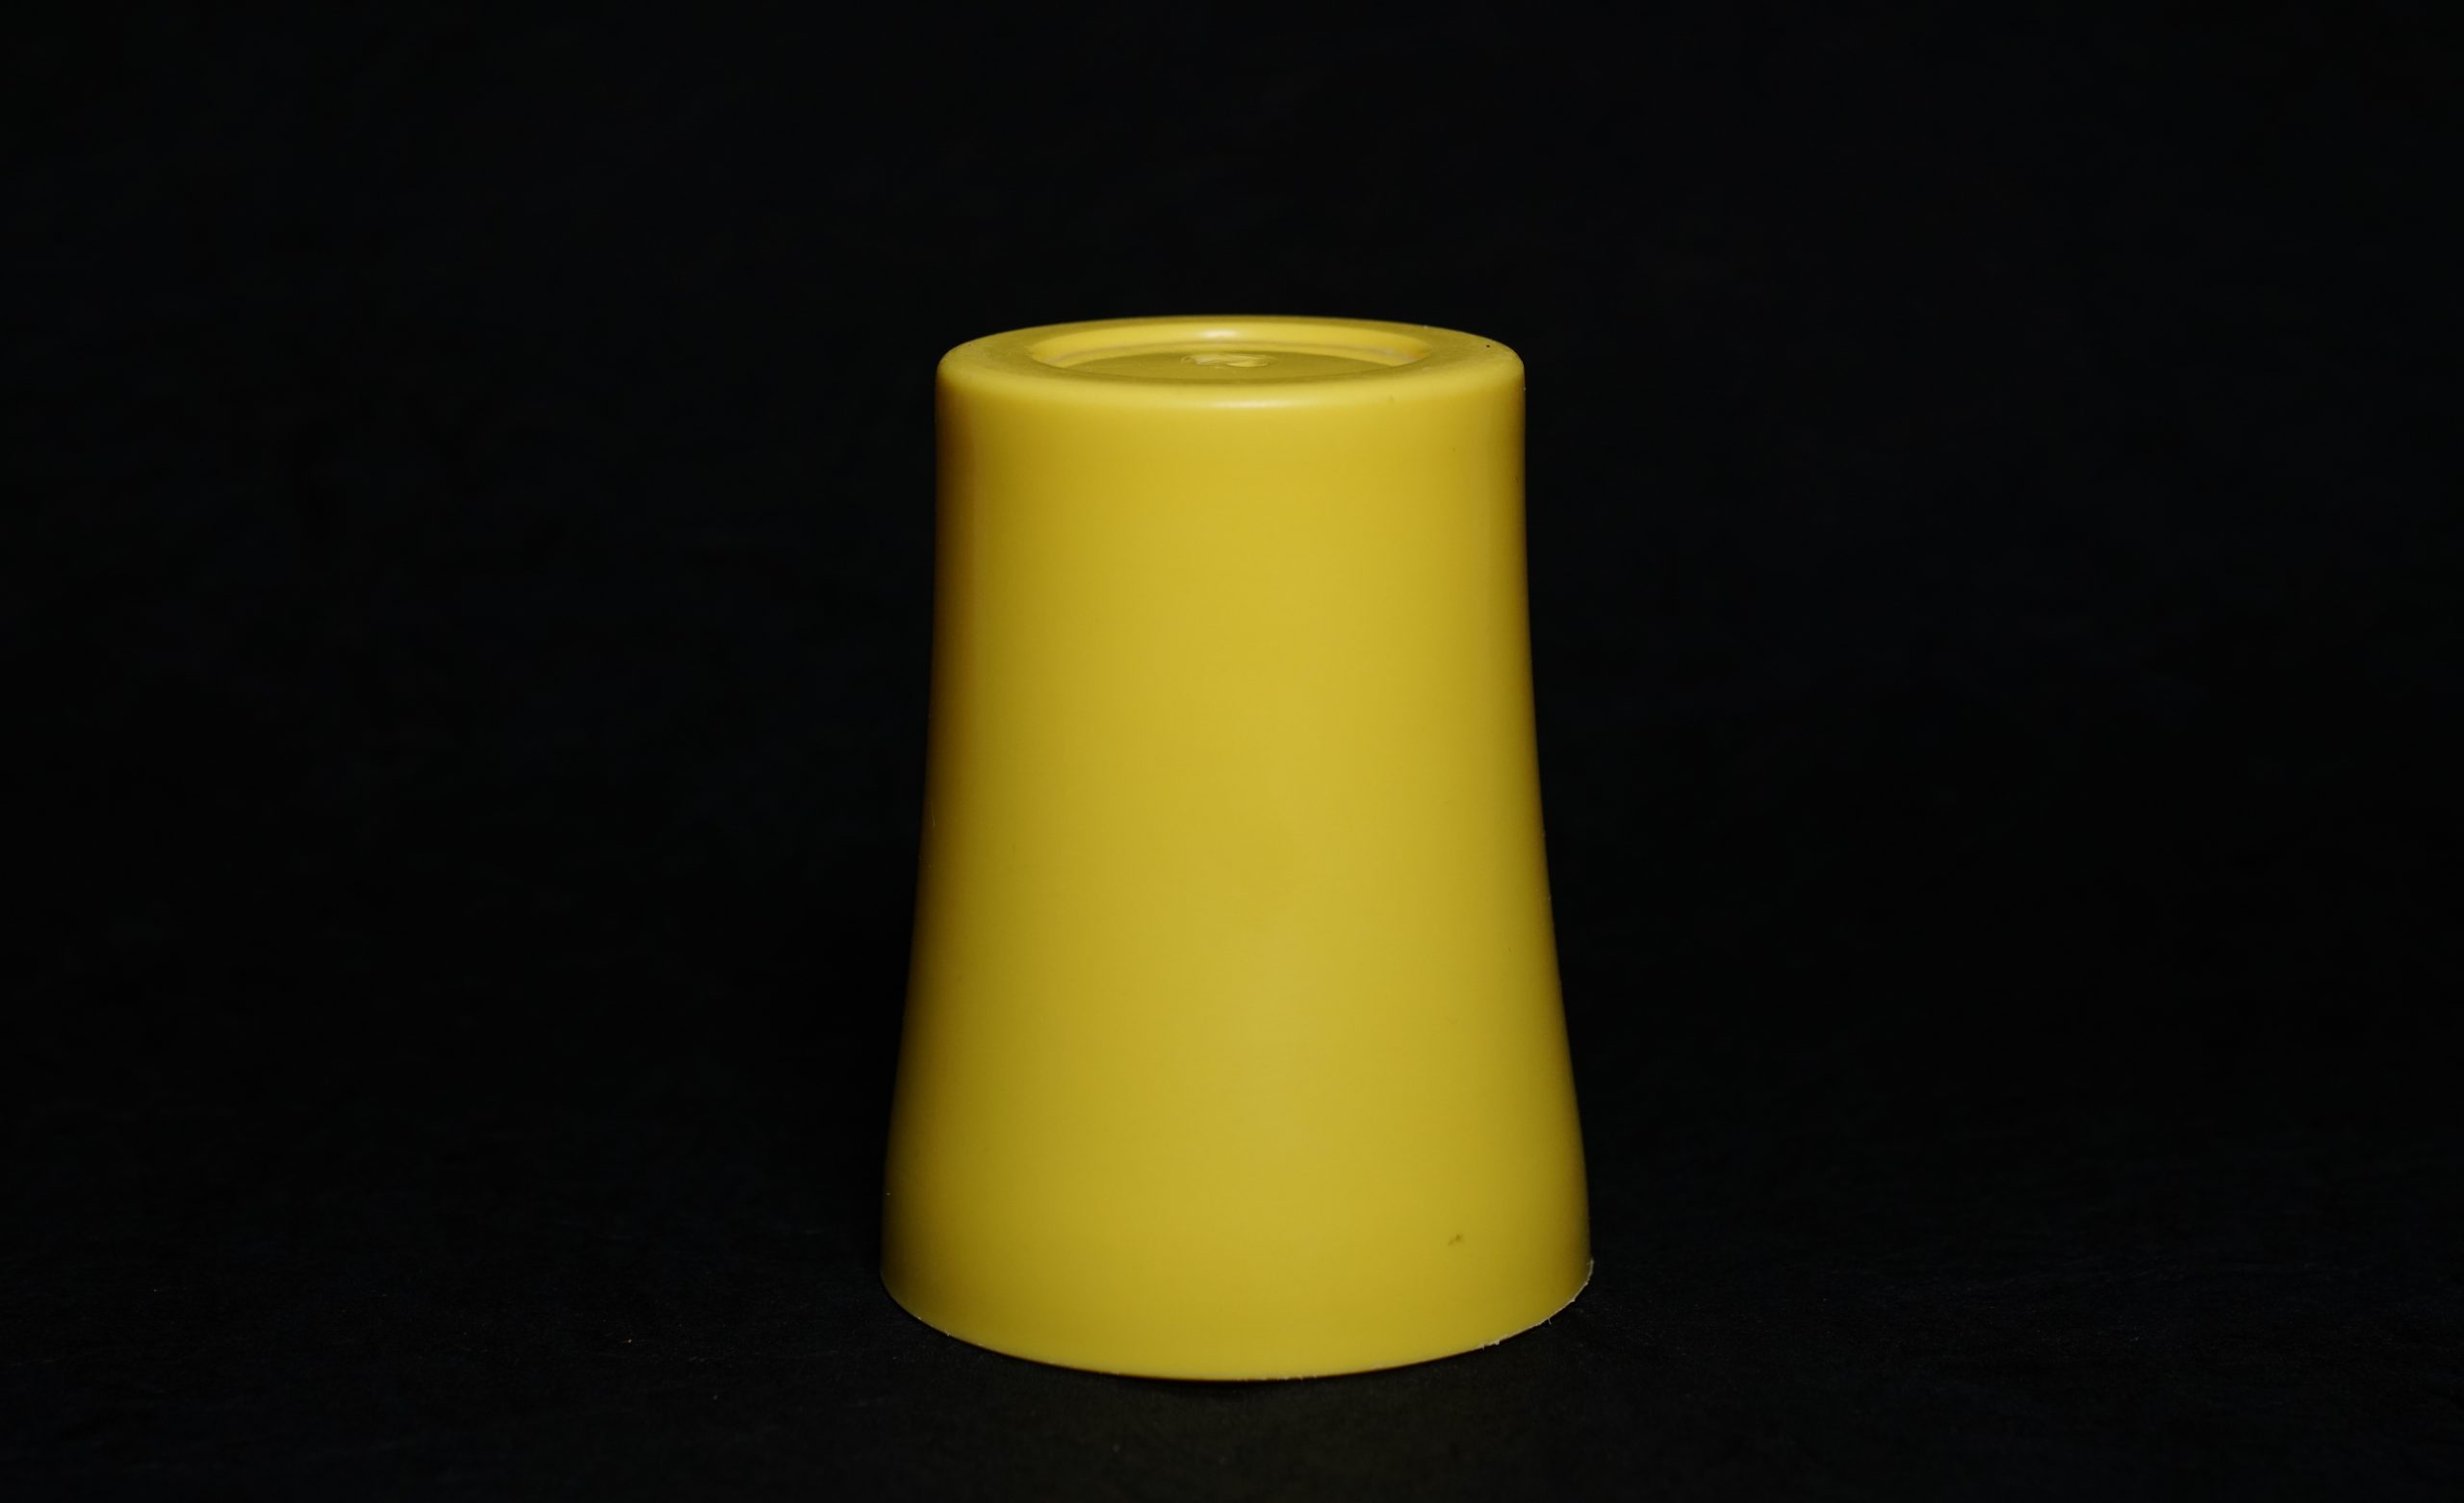 A bottom up plastic tumbler